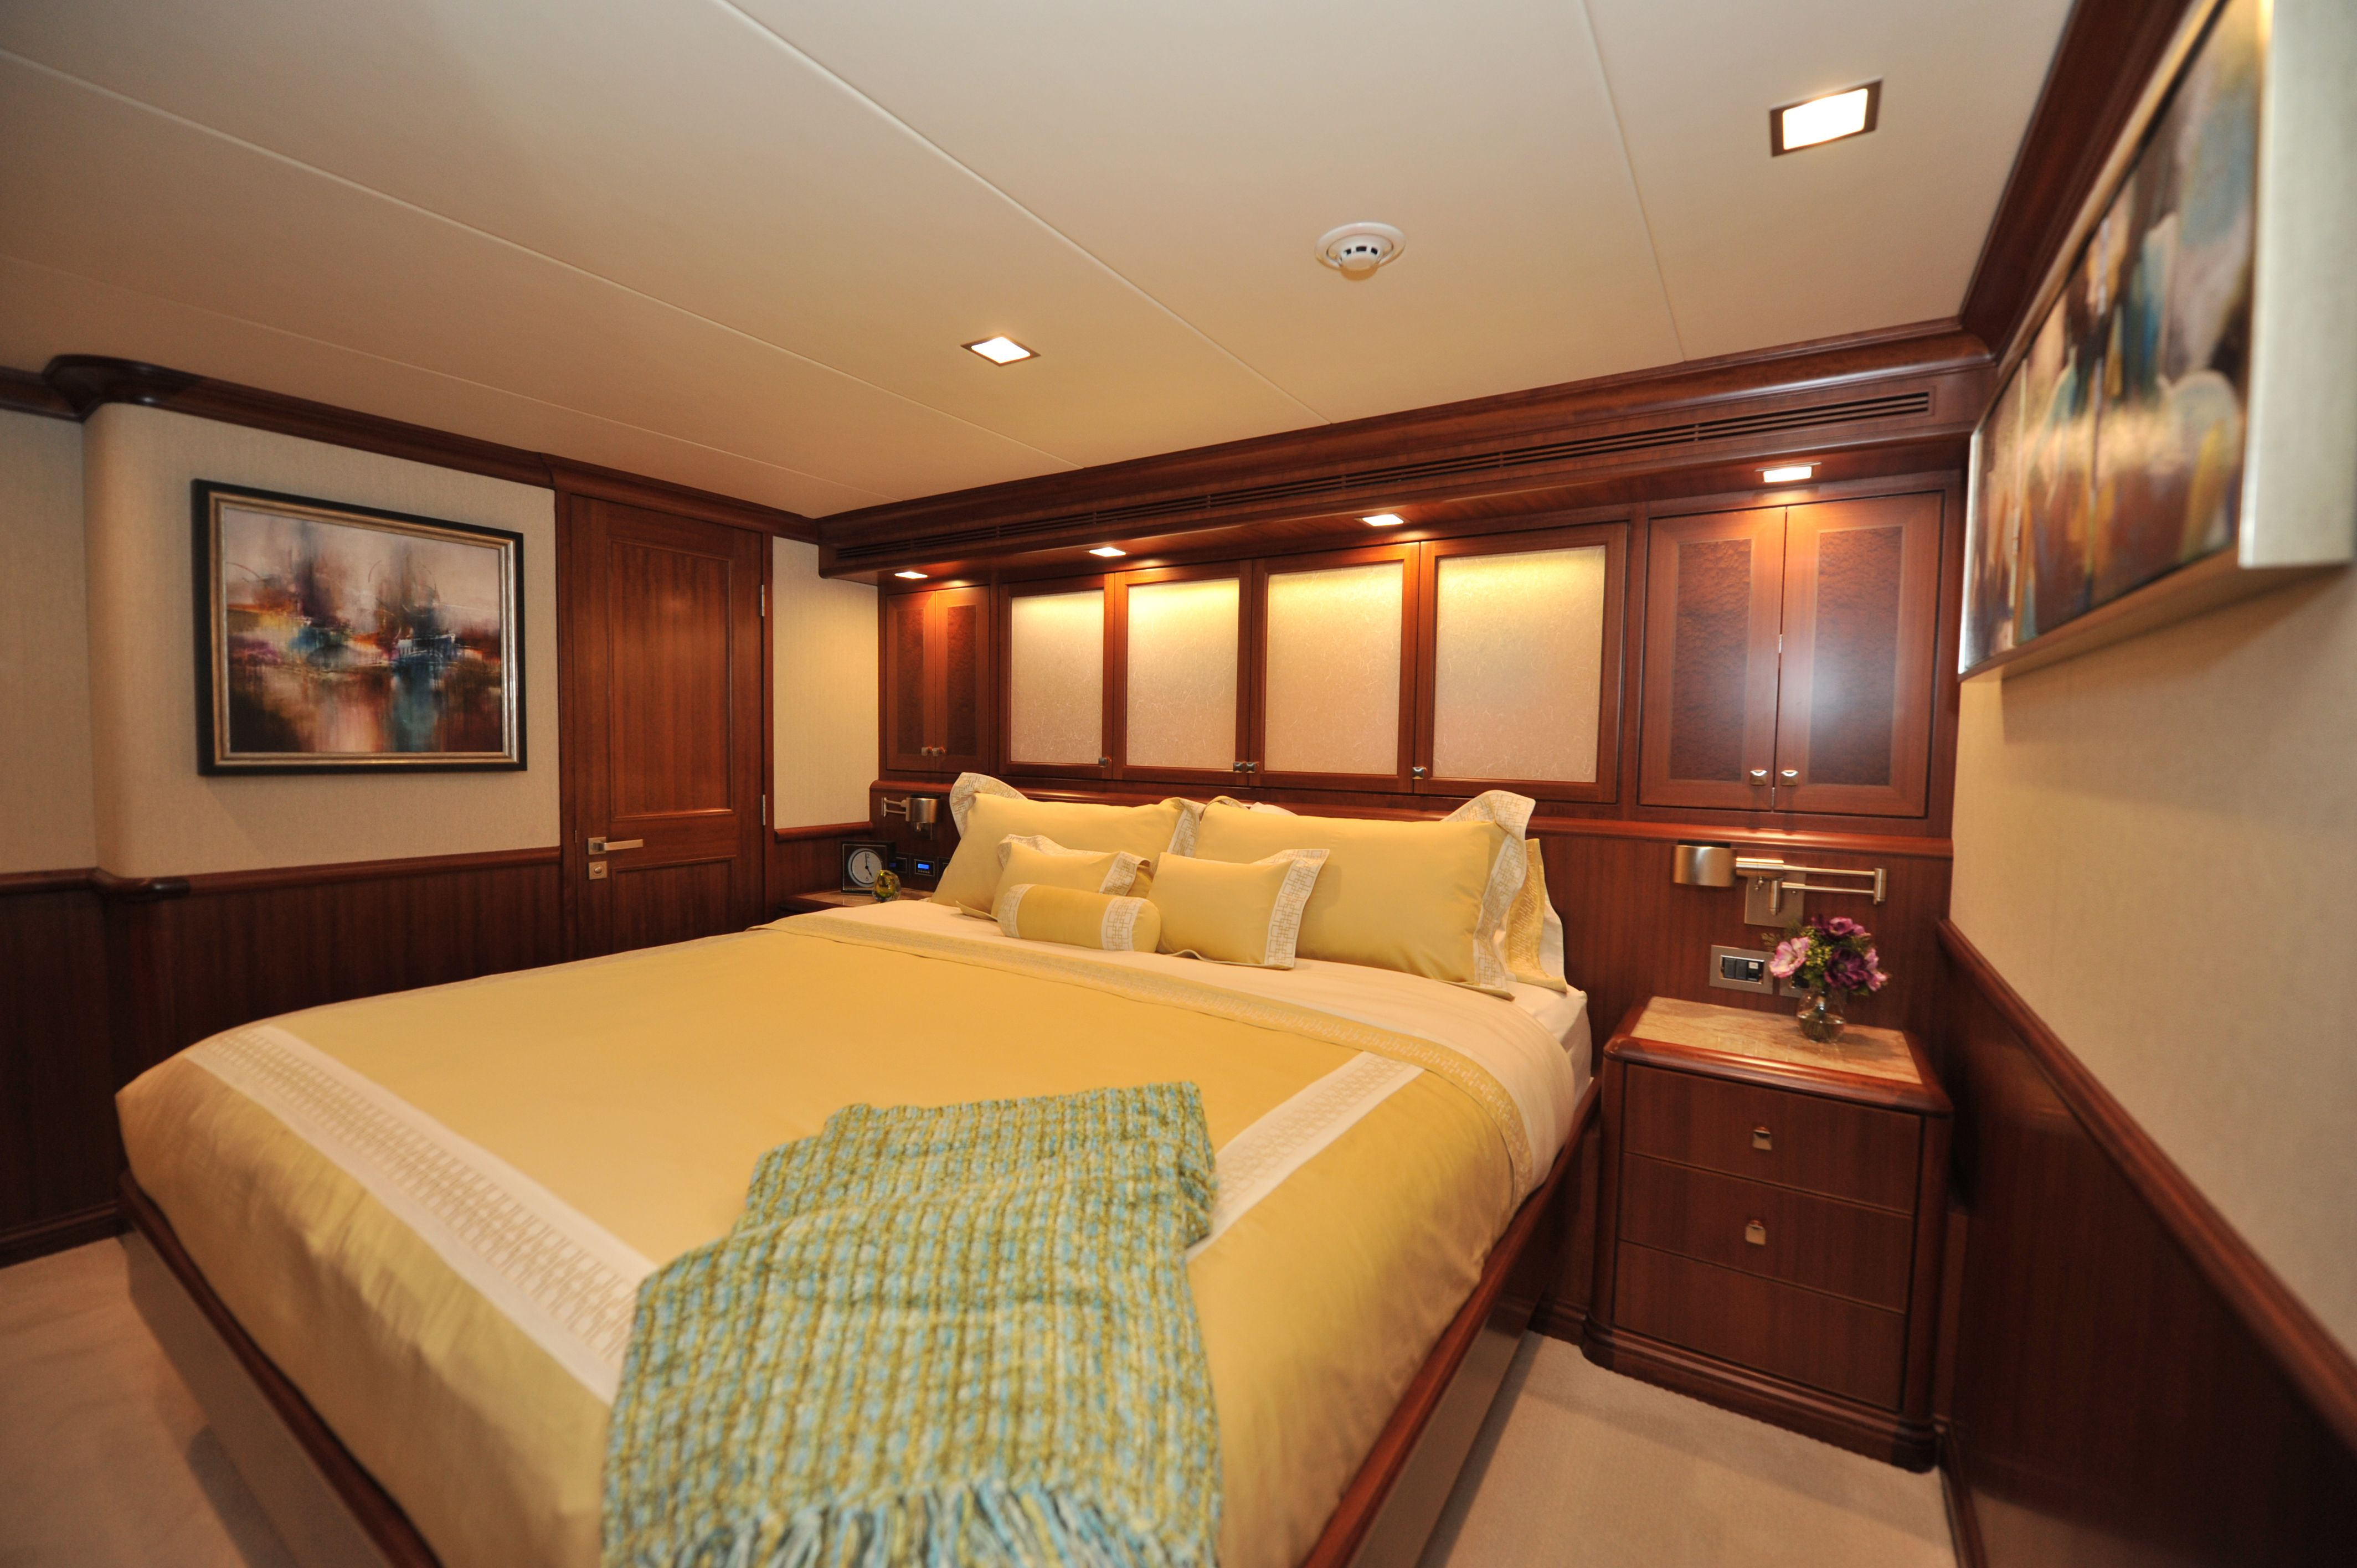 Nordhavn 120-Fwd King Stateroom-Custom Yacht Interior Design-Destry Darr Designs